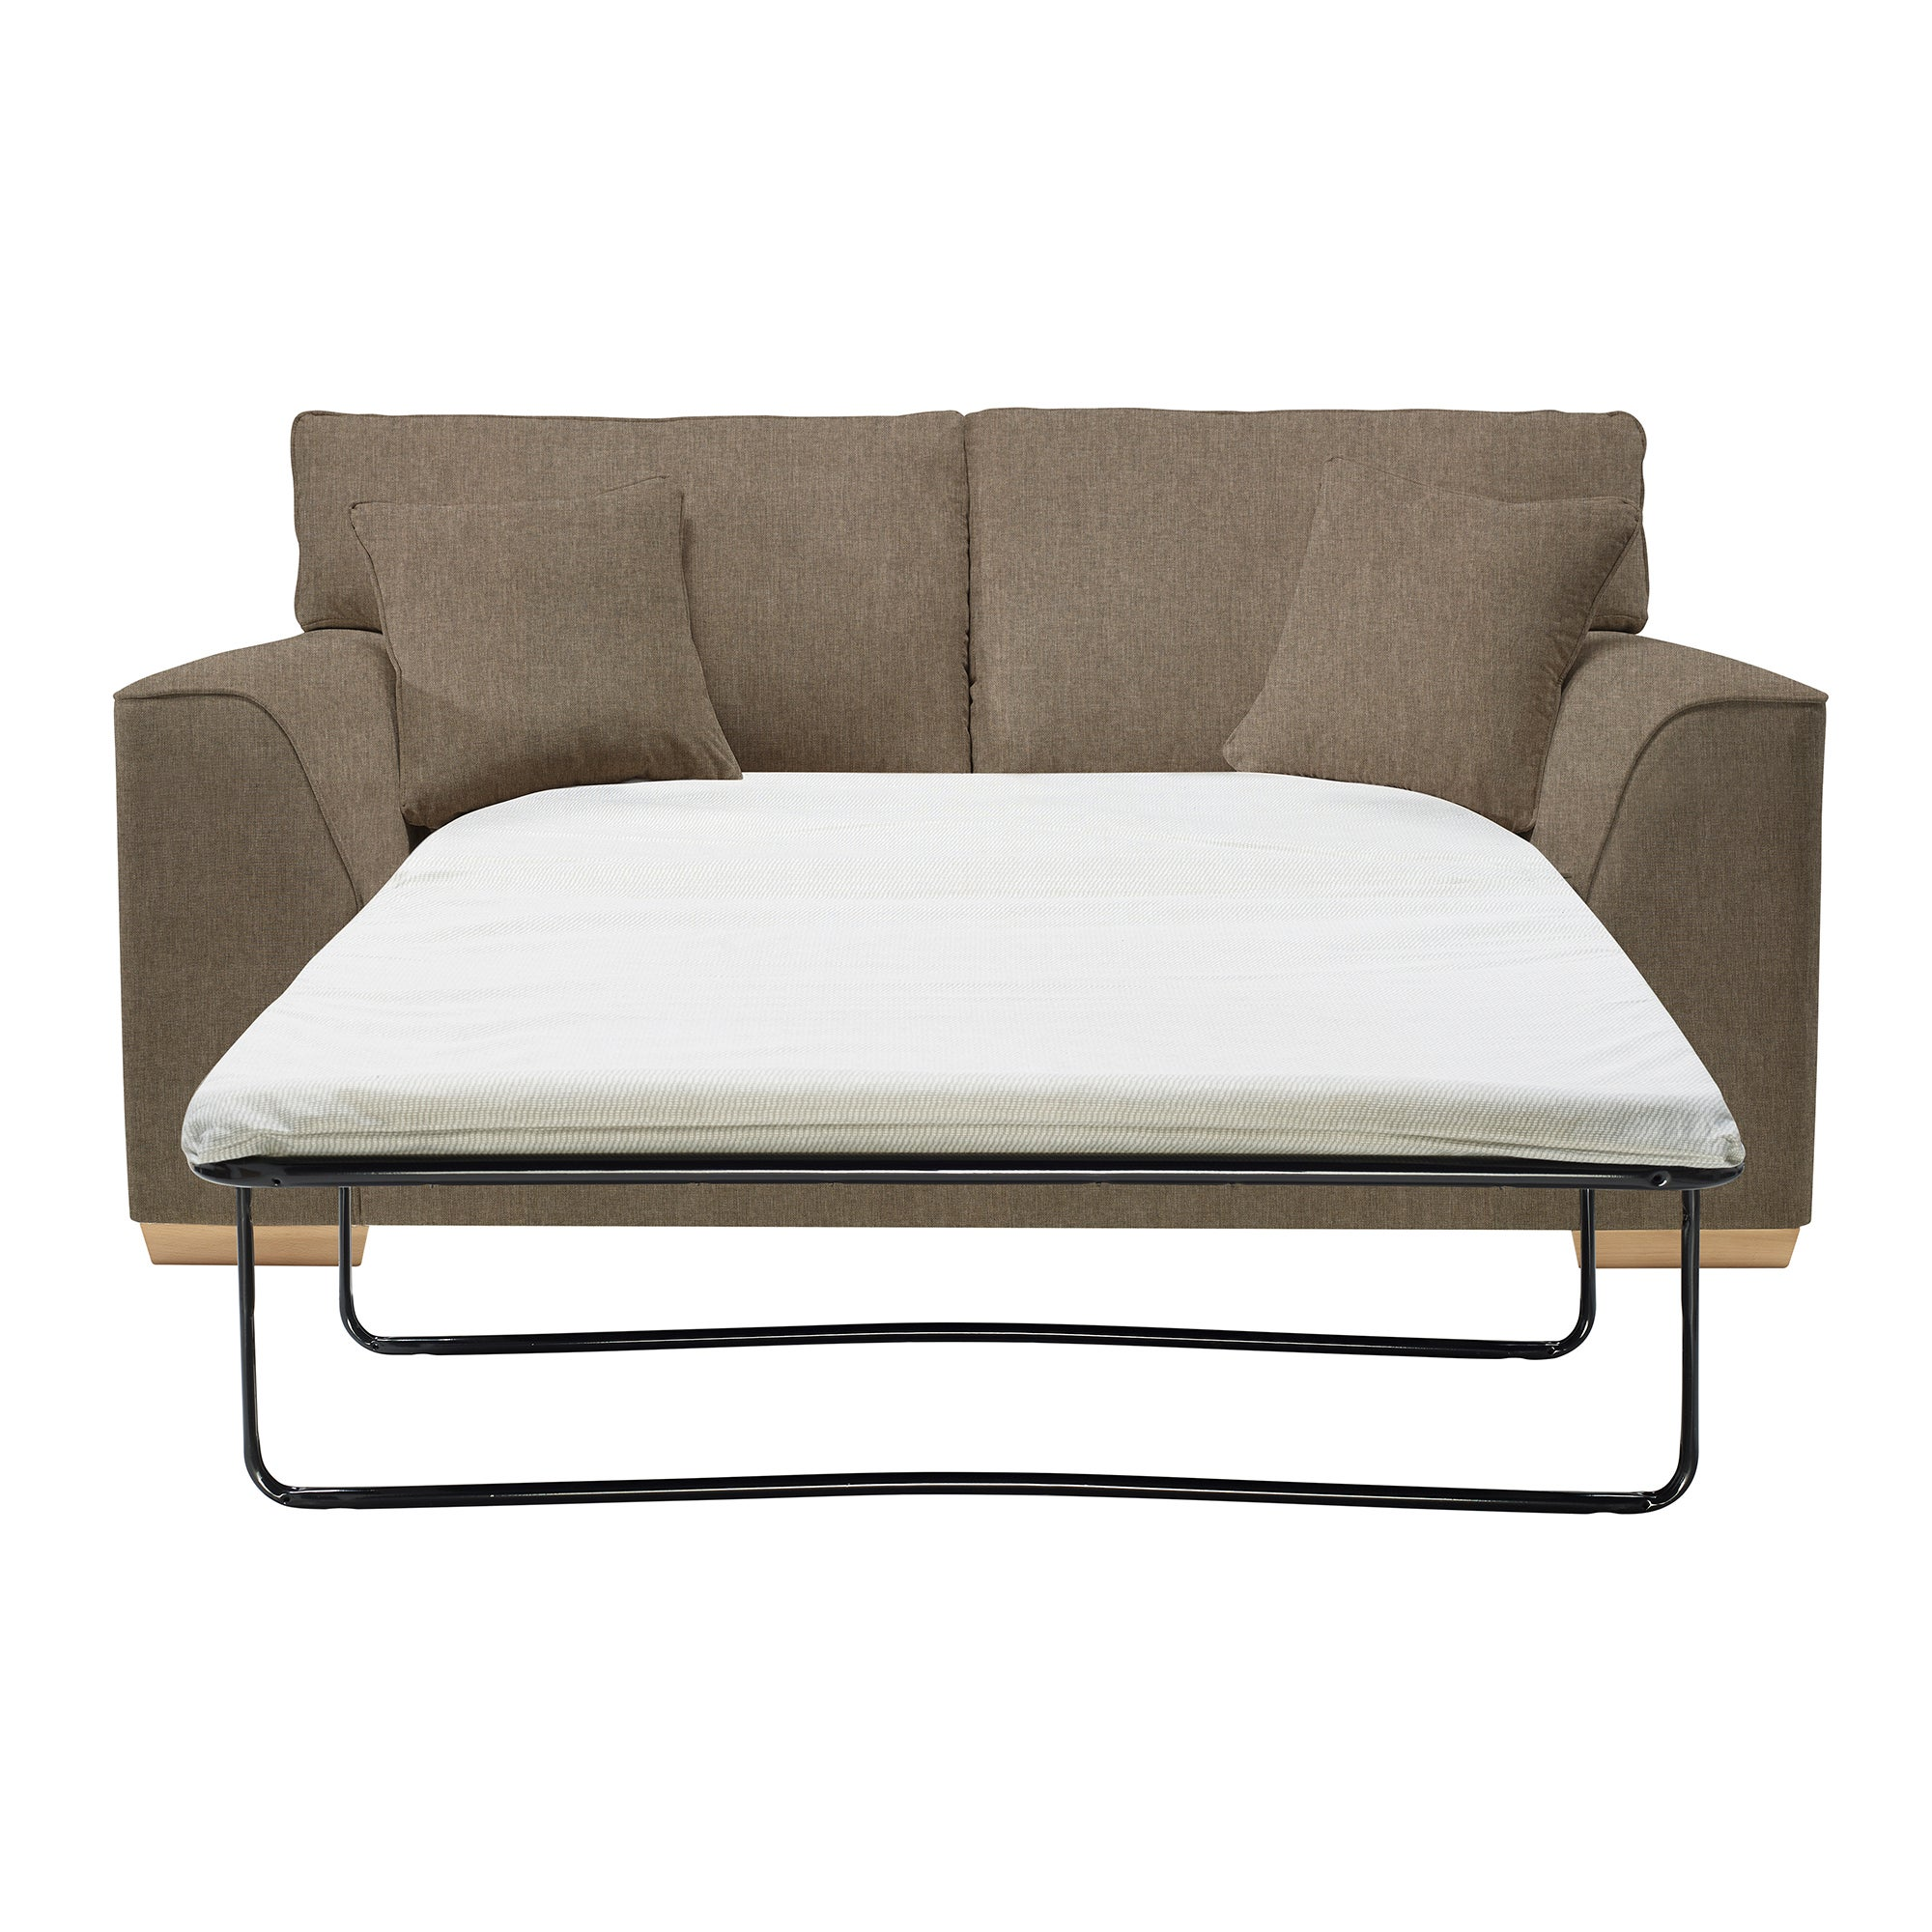 Hove Sofa Bed